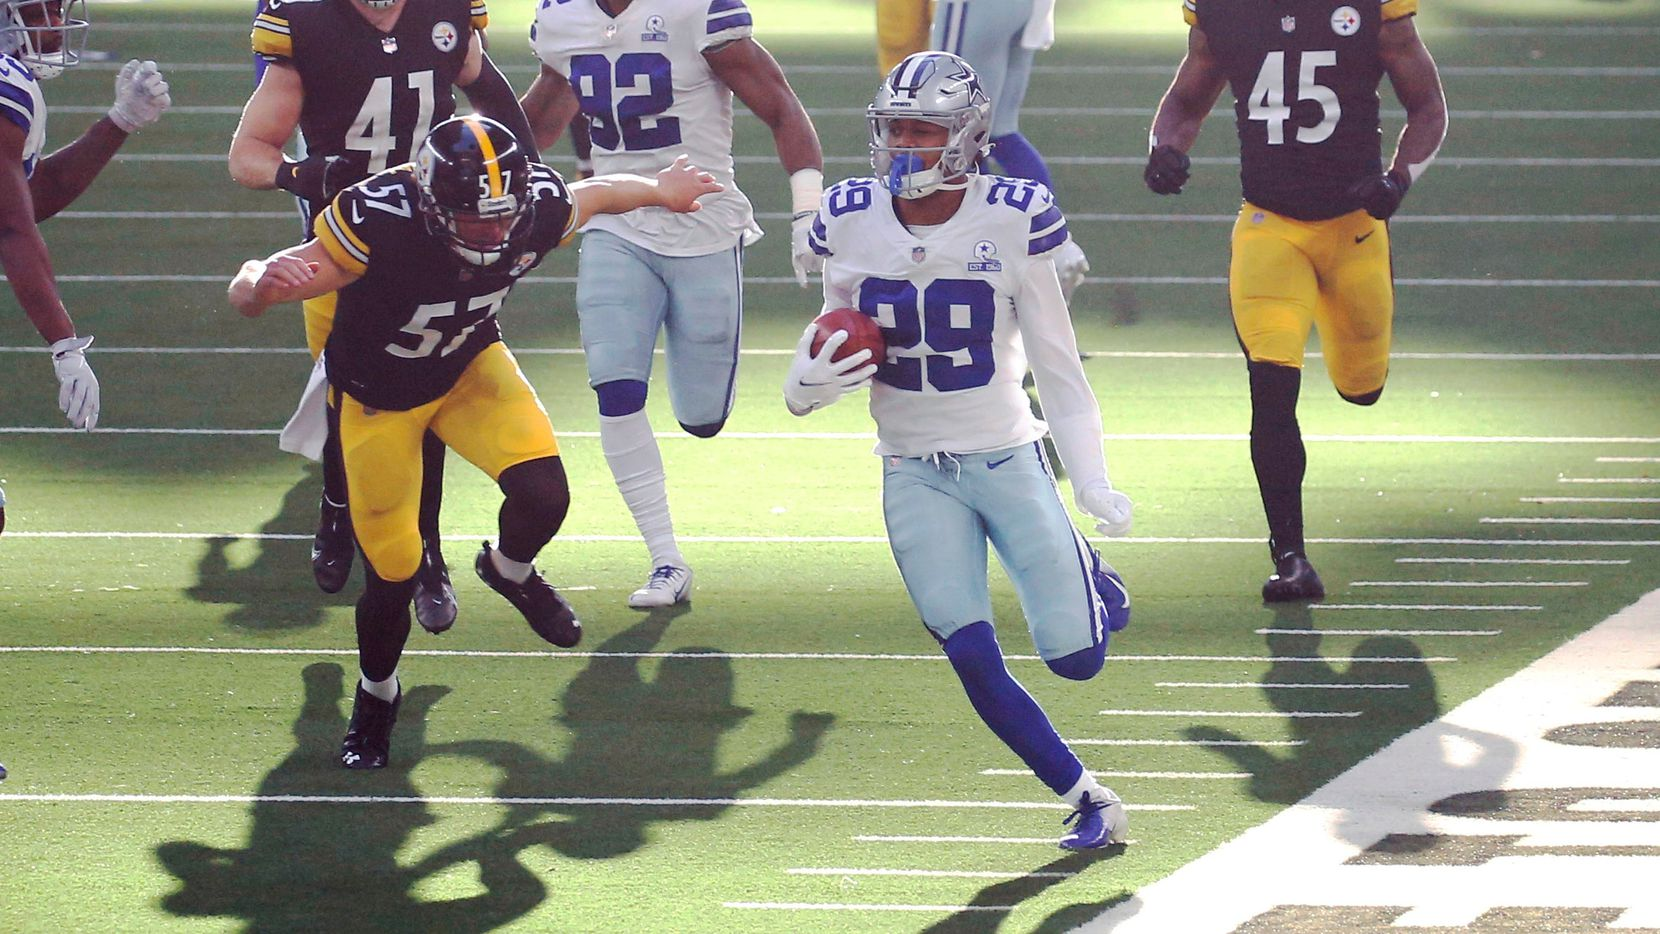 Dallas Cowboys cornerback C.J. Goodwin (29) runs up the field on a kickoff return in a game against the Pittsburgh Steelers during the second quarter of play at AT&T Stadium in Arlington, Texas on Sunday, November 8, 2020.